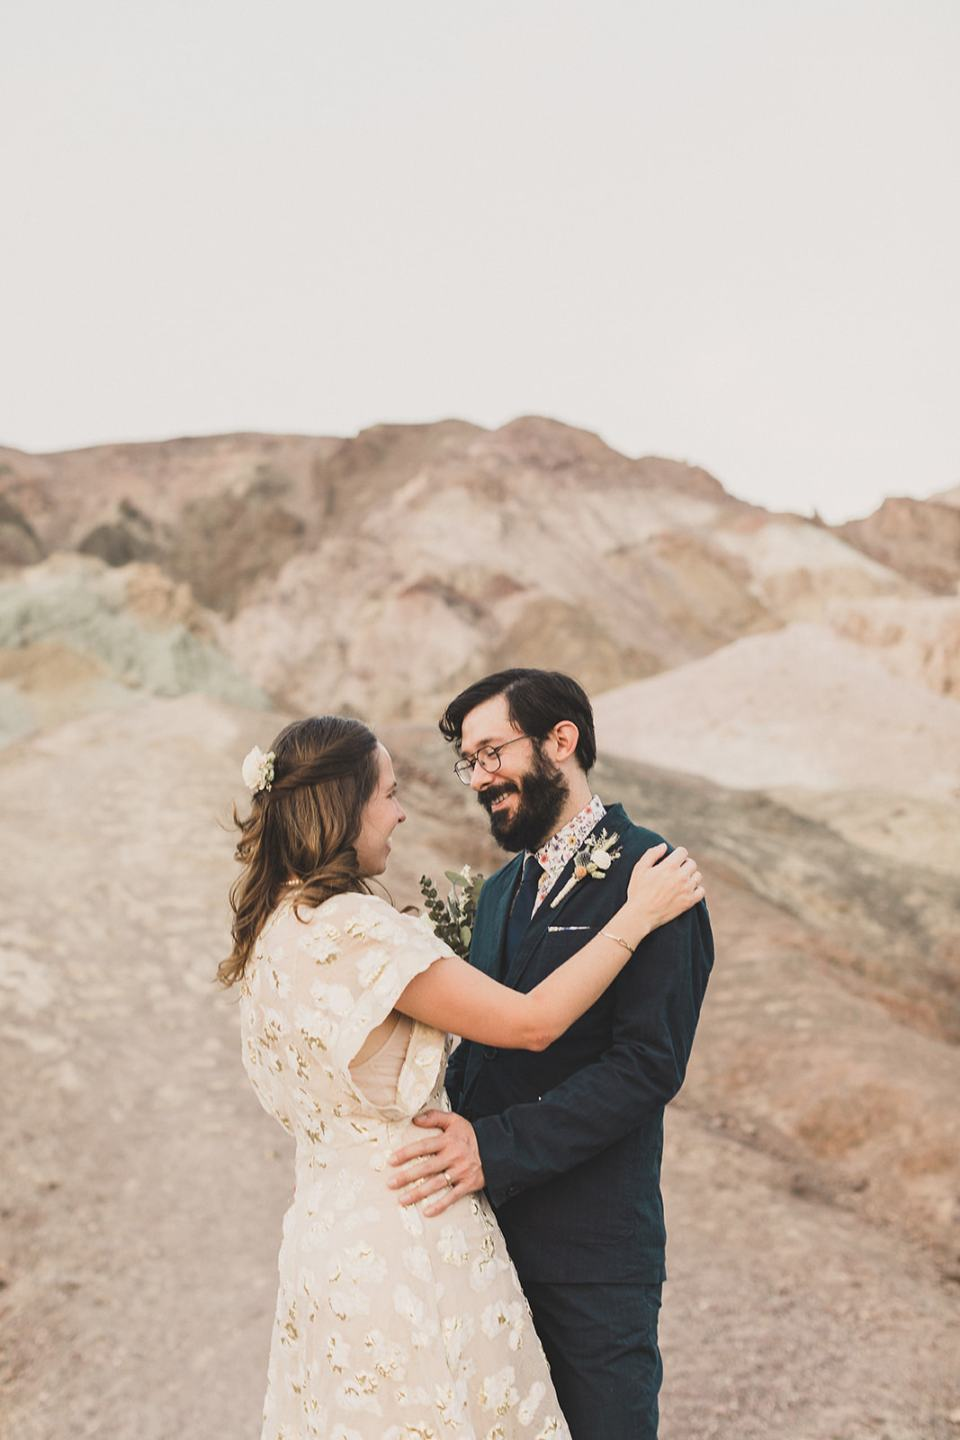 groom looks at bride with smile during wedding photos at Zabriskie Point